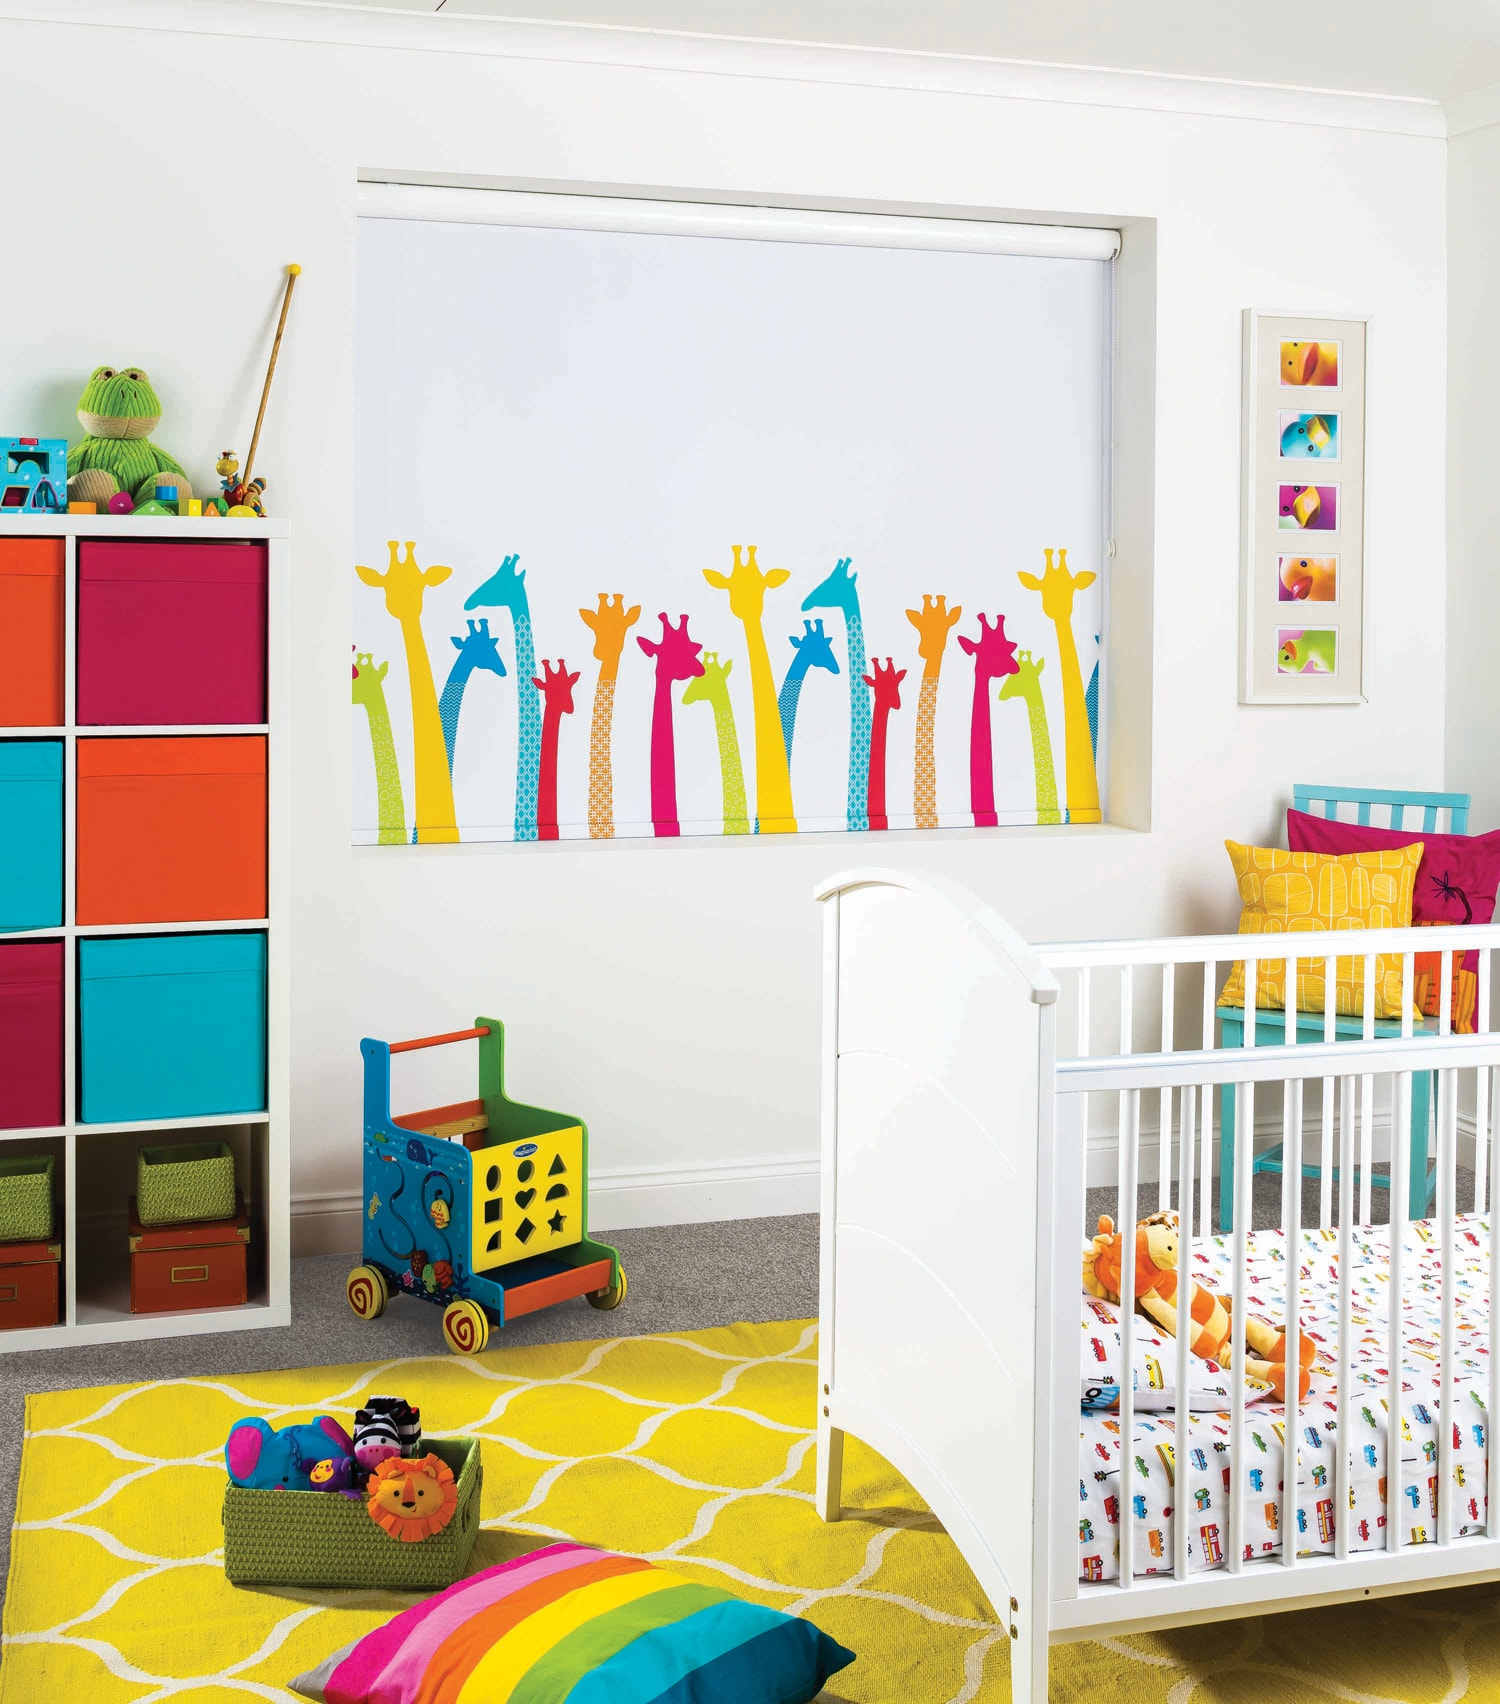 blackout blinds from norwich sunblinds pleated blinds rairwin dino design for childrens rooms